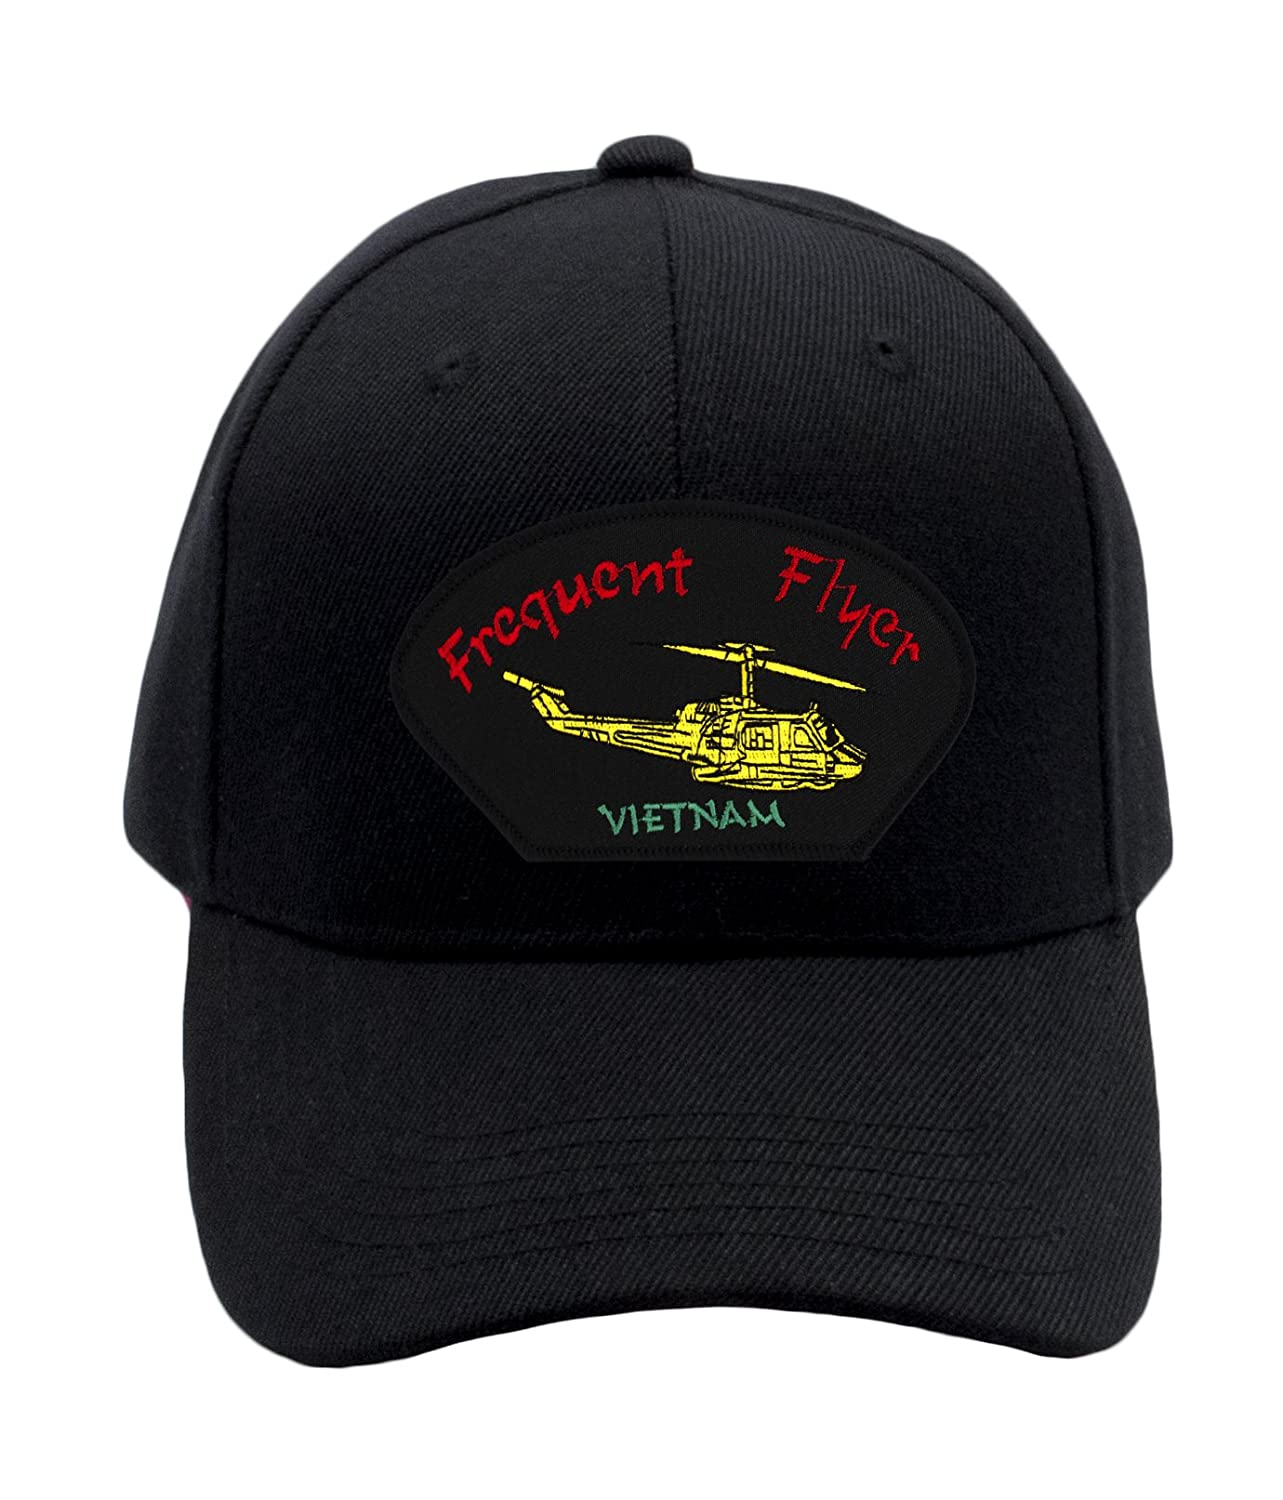 Vietnam Hat//Ballcap Adjustable One Size Fits Most Patchtown Frequent Flyer